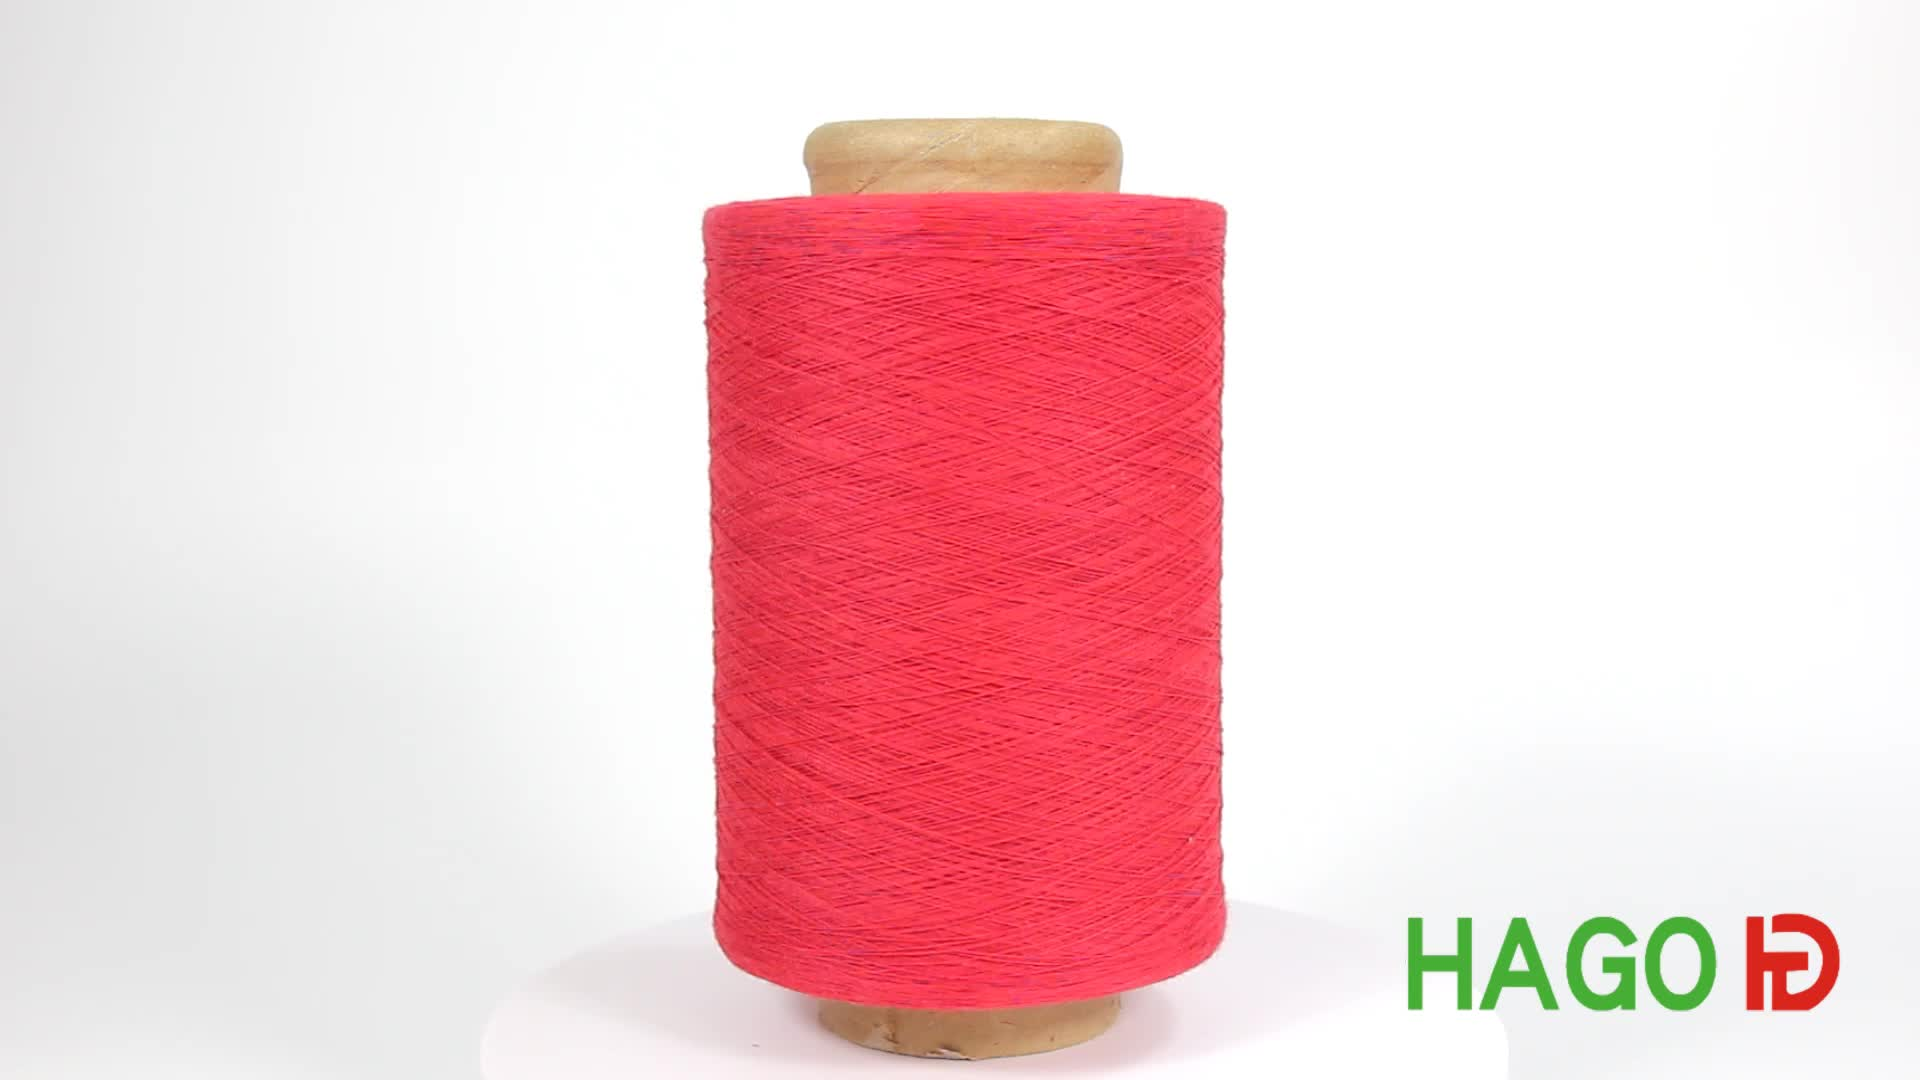 Hago recycled cotton polyester blend yarn 70 30 knit yarn for knitting